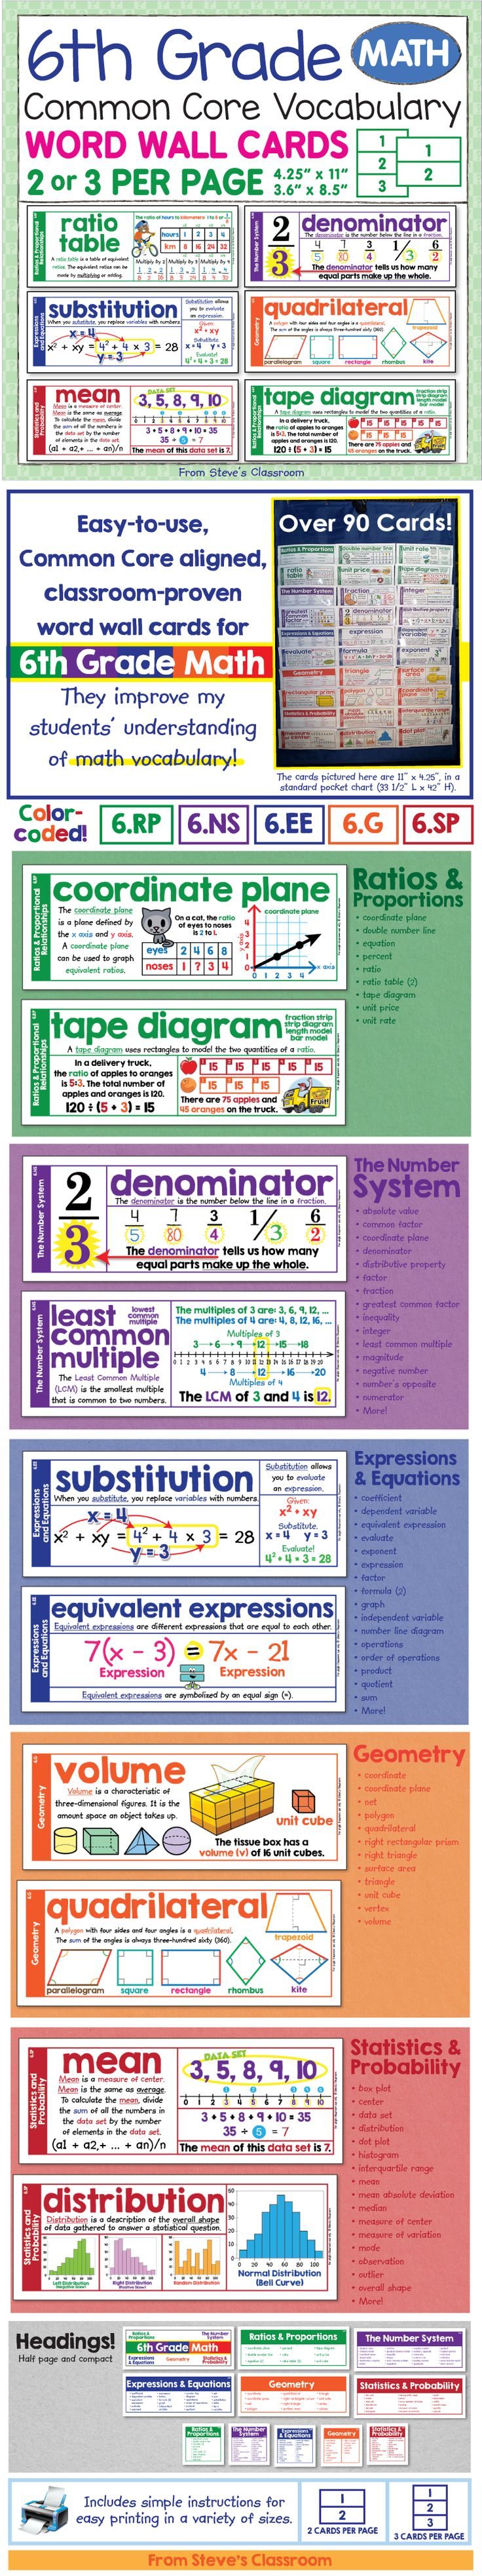 New Product in my store! 50% off for two days! Get the whole set of 90 cards for just $2. Sale ends Sunday.   6th Grade Math Vocabulary Word Wall Cards - Common Core Aligned.